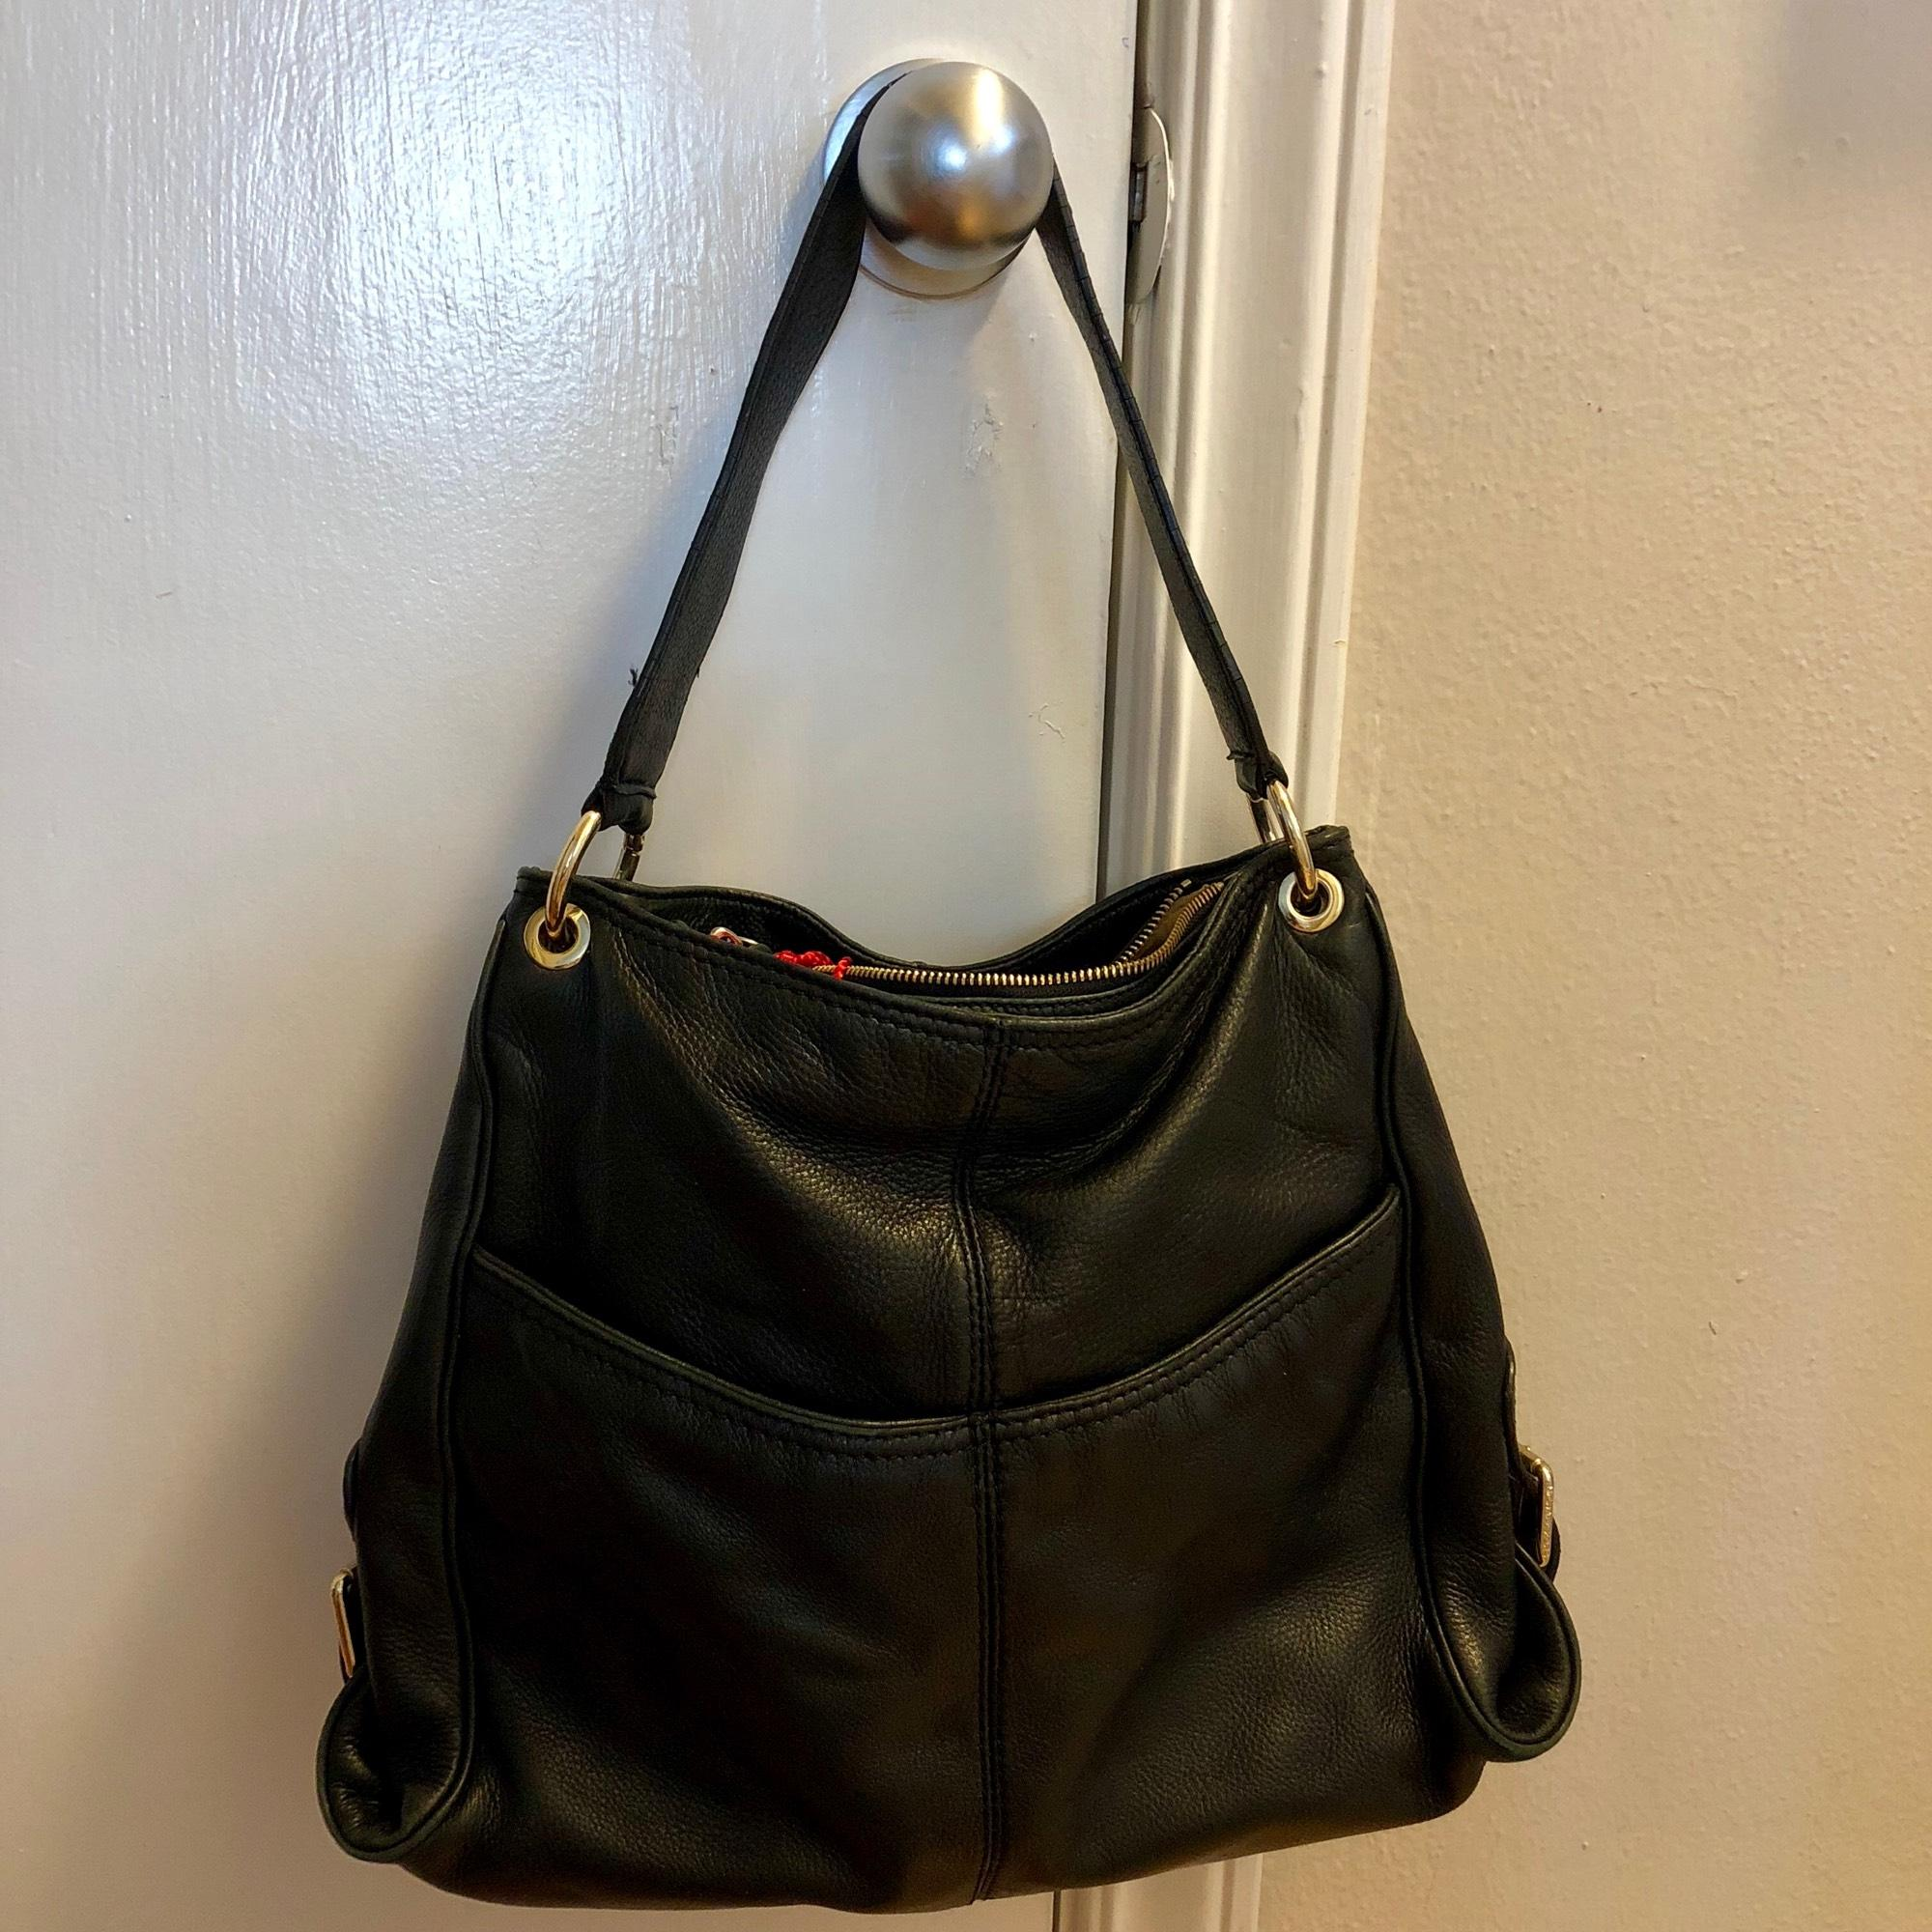 f51310783ec6 ... coupon code for michael kors black leather hobo bag tradesy bf638 35f57  ...